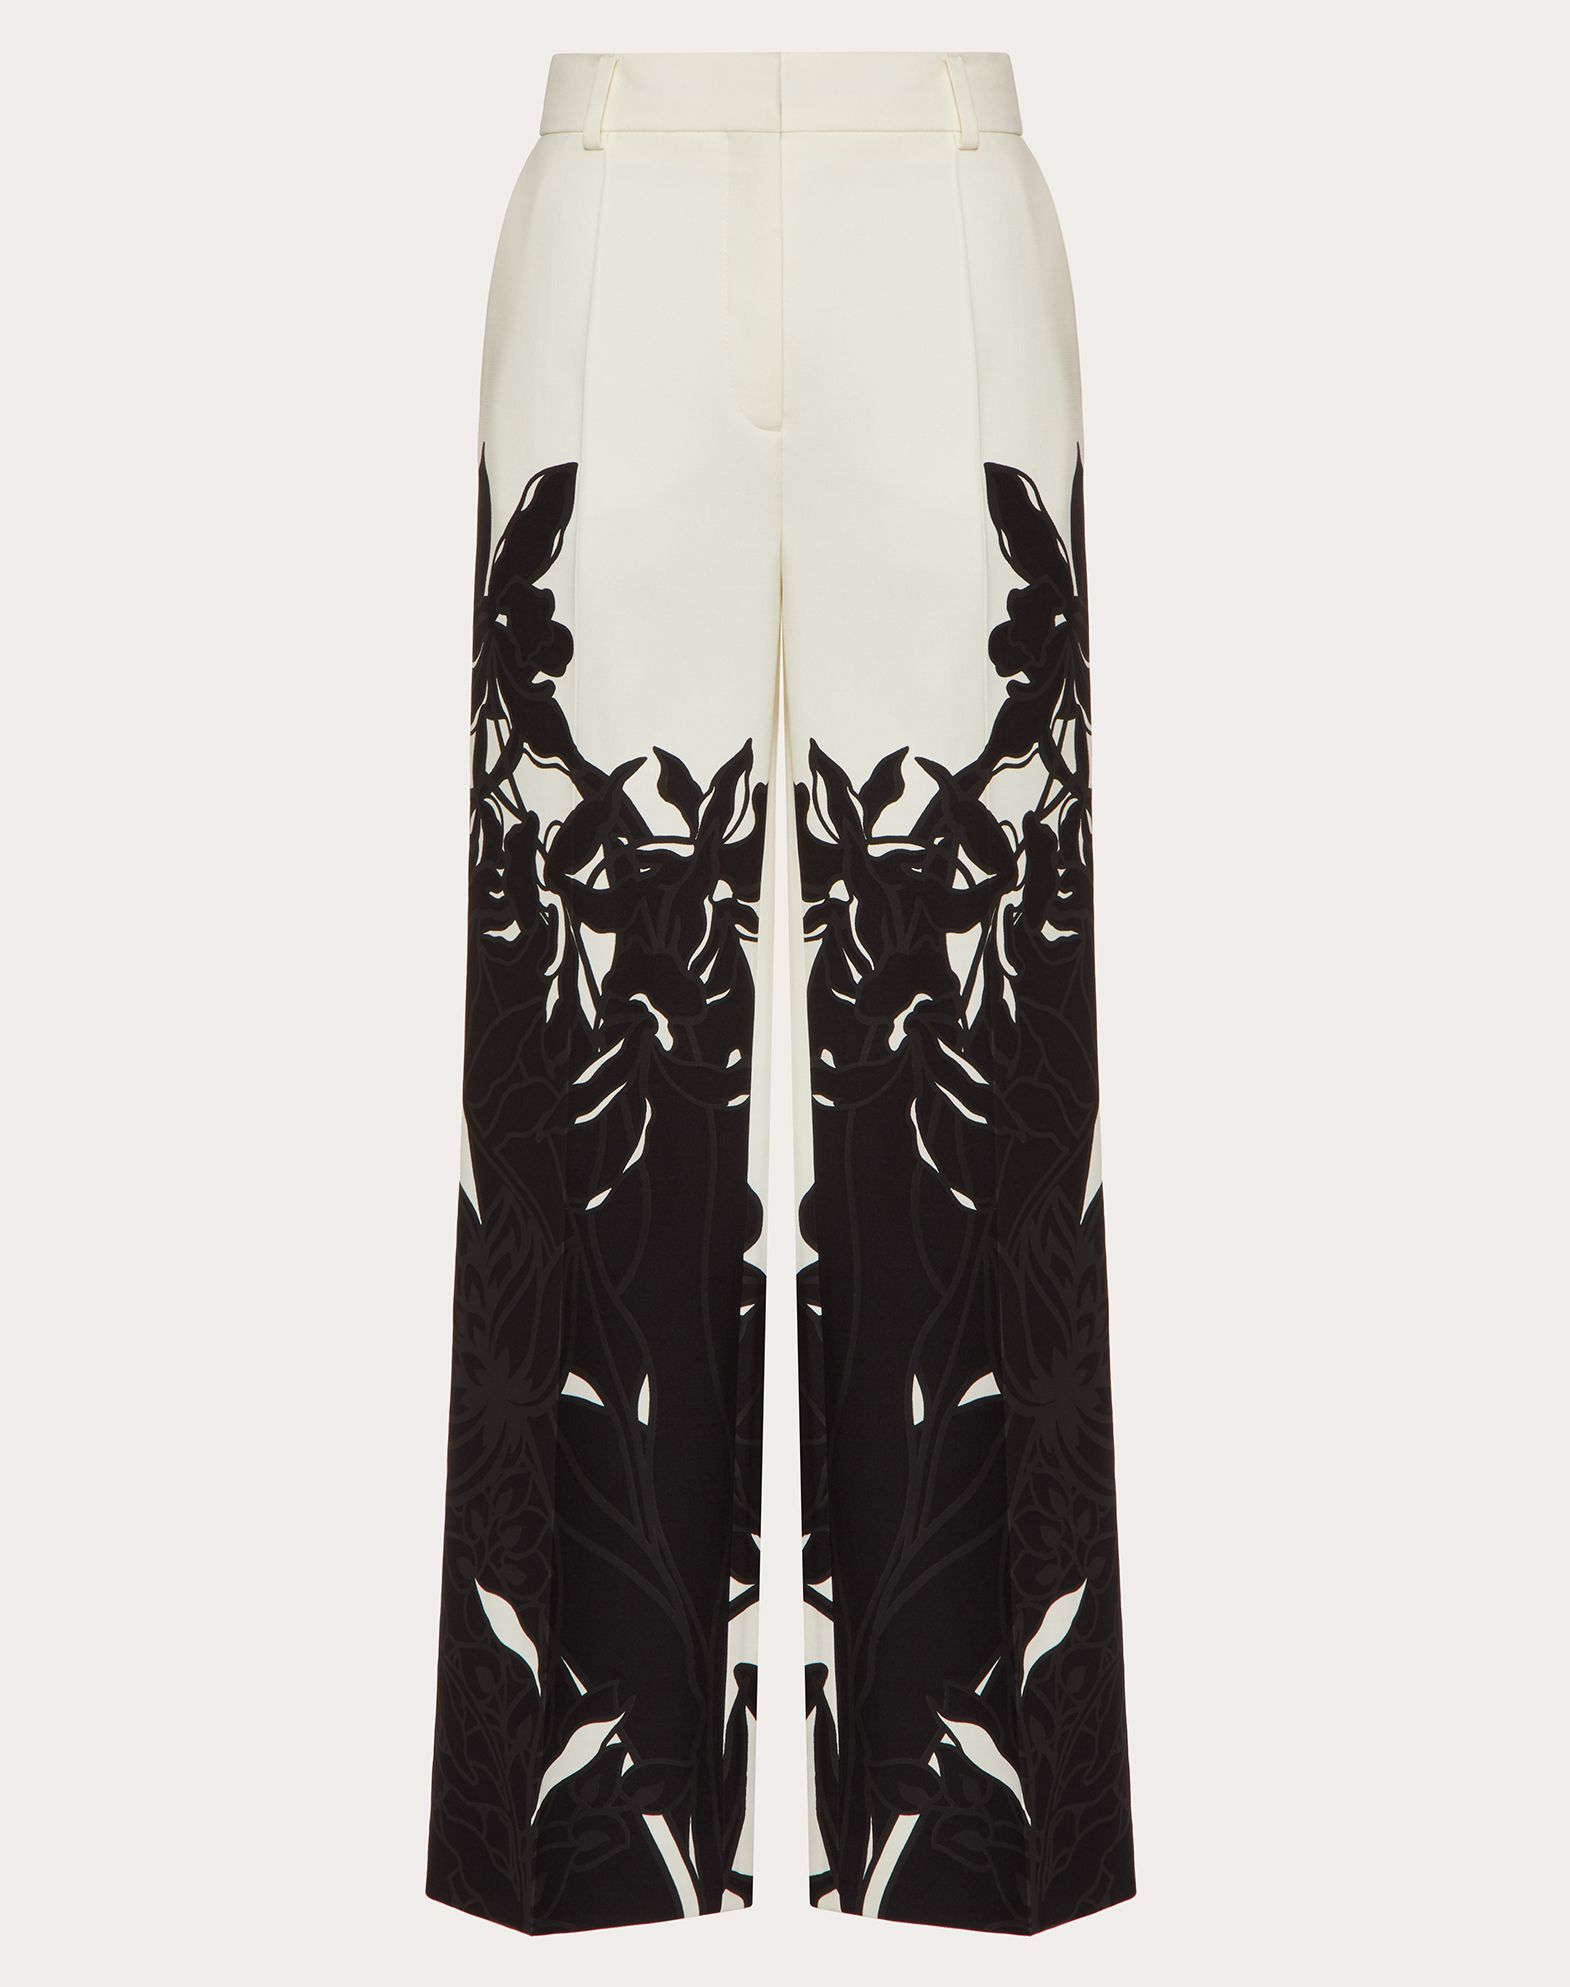 Printed Crepe Couture Pants